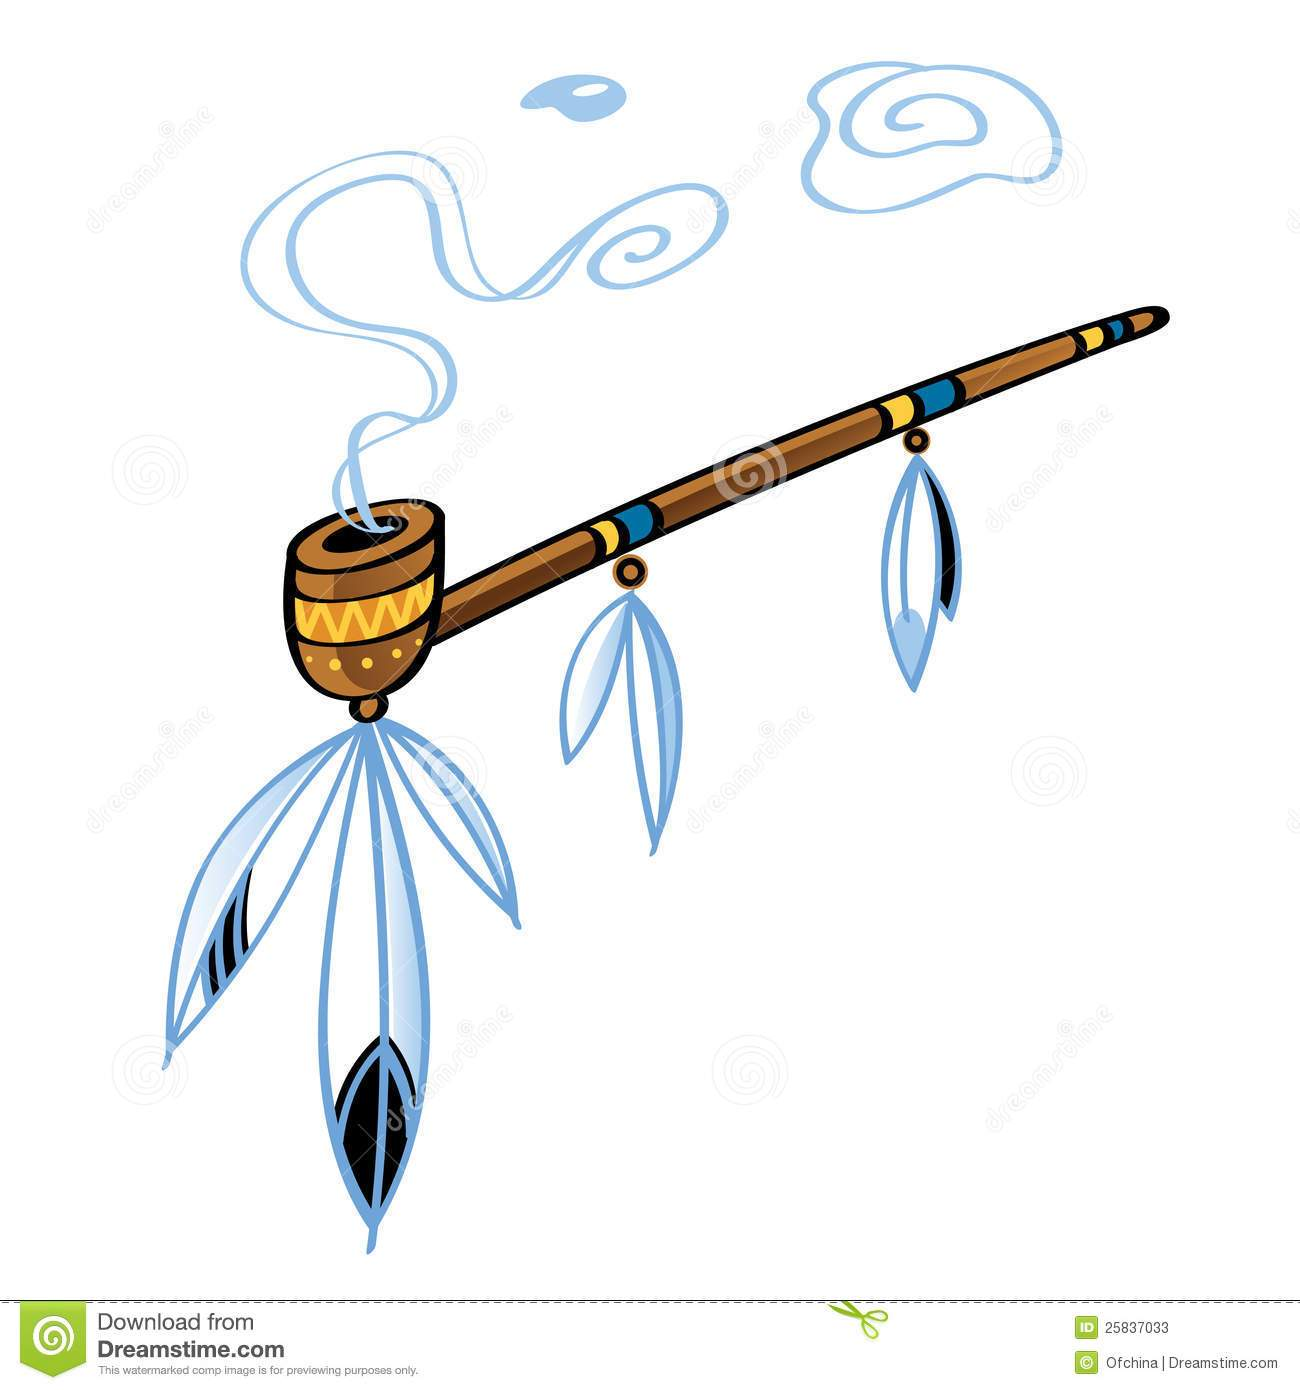 Peacepipe clipart svg royalty free library Peace pipe clipart 5 » Clipart Portal svg royalty free library